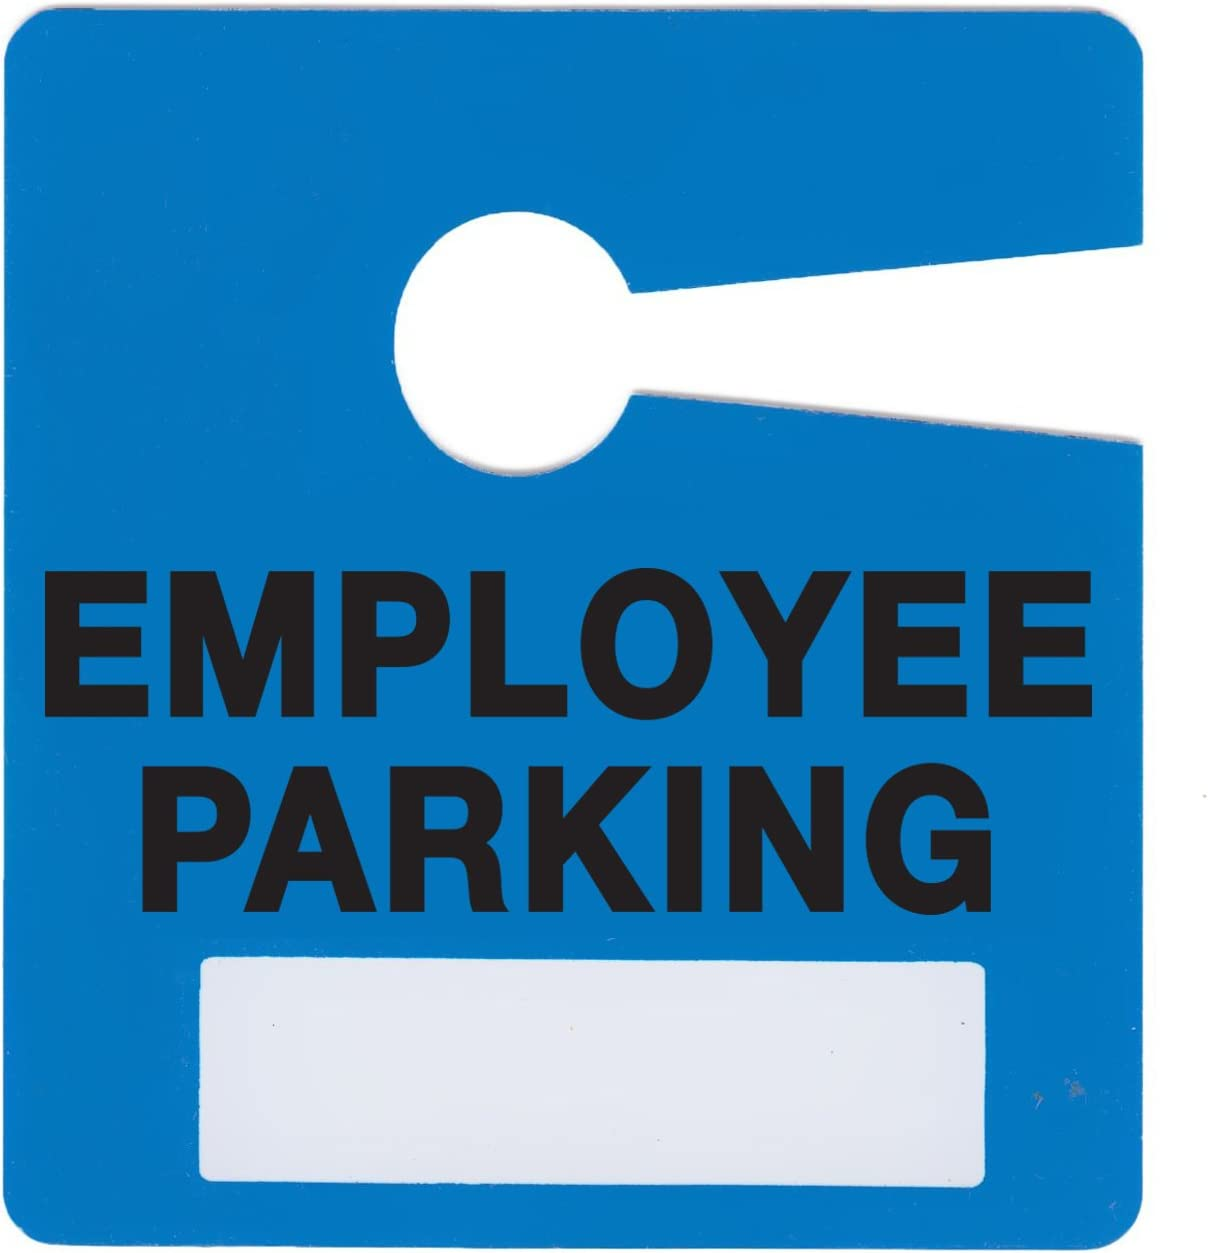 Employee Parking Permit Pass Stock Hang Tags for Office Building, Corporations, Businesses, Employers, by Milcoast, 10 Pack (Blue)